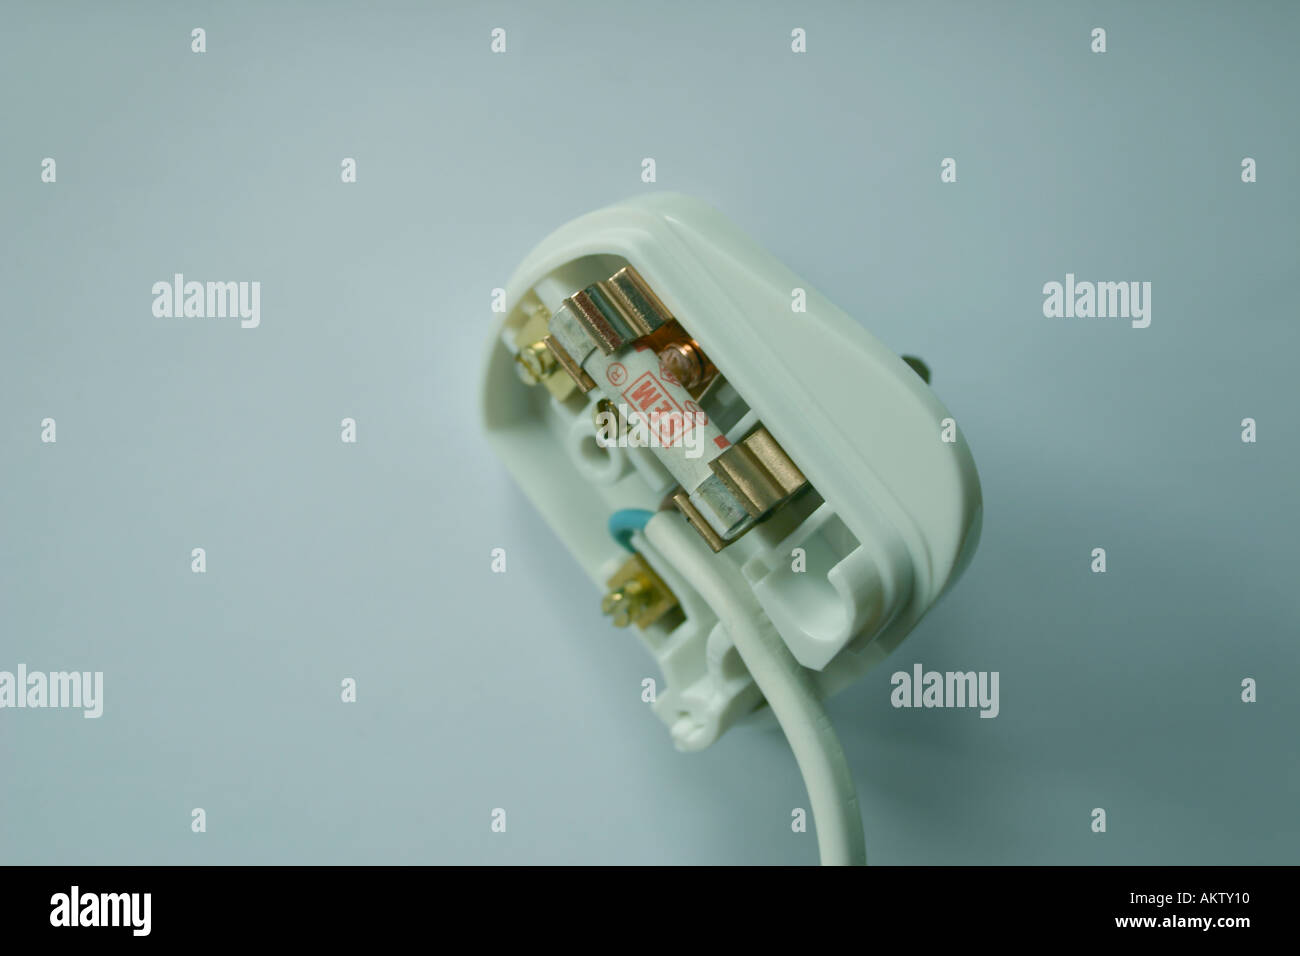 British Plug Fuse Stock Photos Images Alamy Mcb Circuit Breakers To Replace Rewire Fuses Mini Trip In Three Pin Electrical Irish And Standard 13 Amp Fused Image